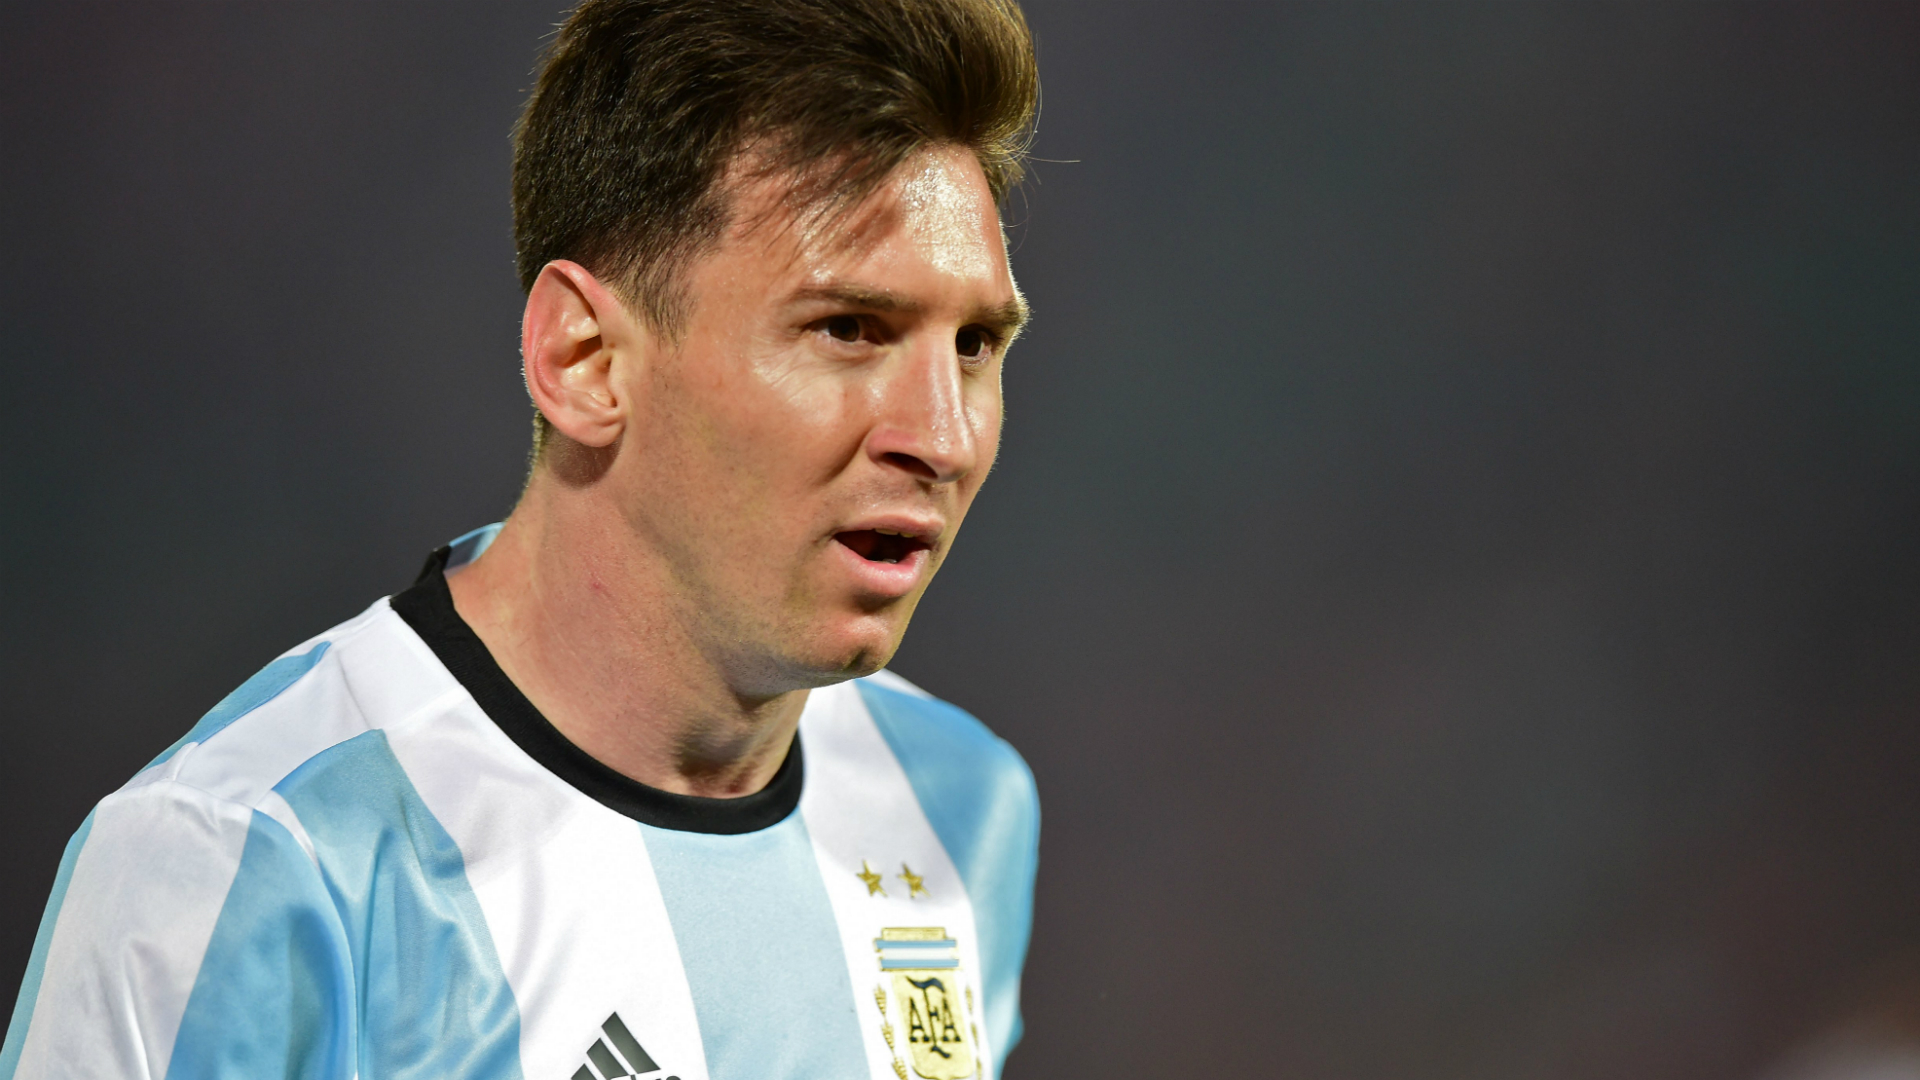 Copa America Centenario 2016 preview: Can Lionel Messi lead